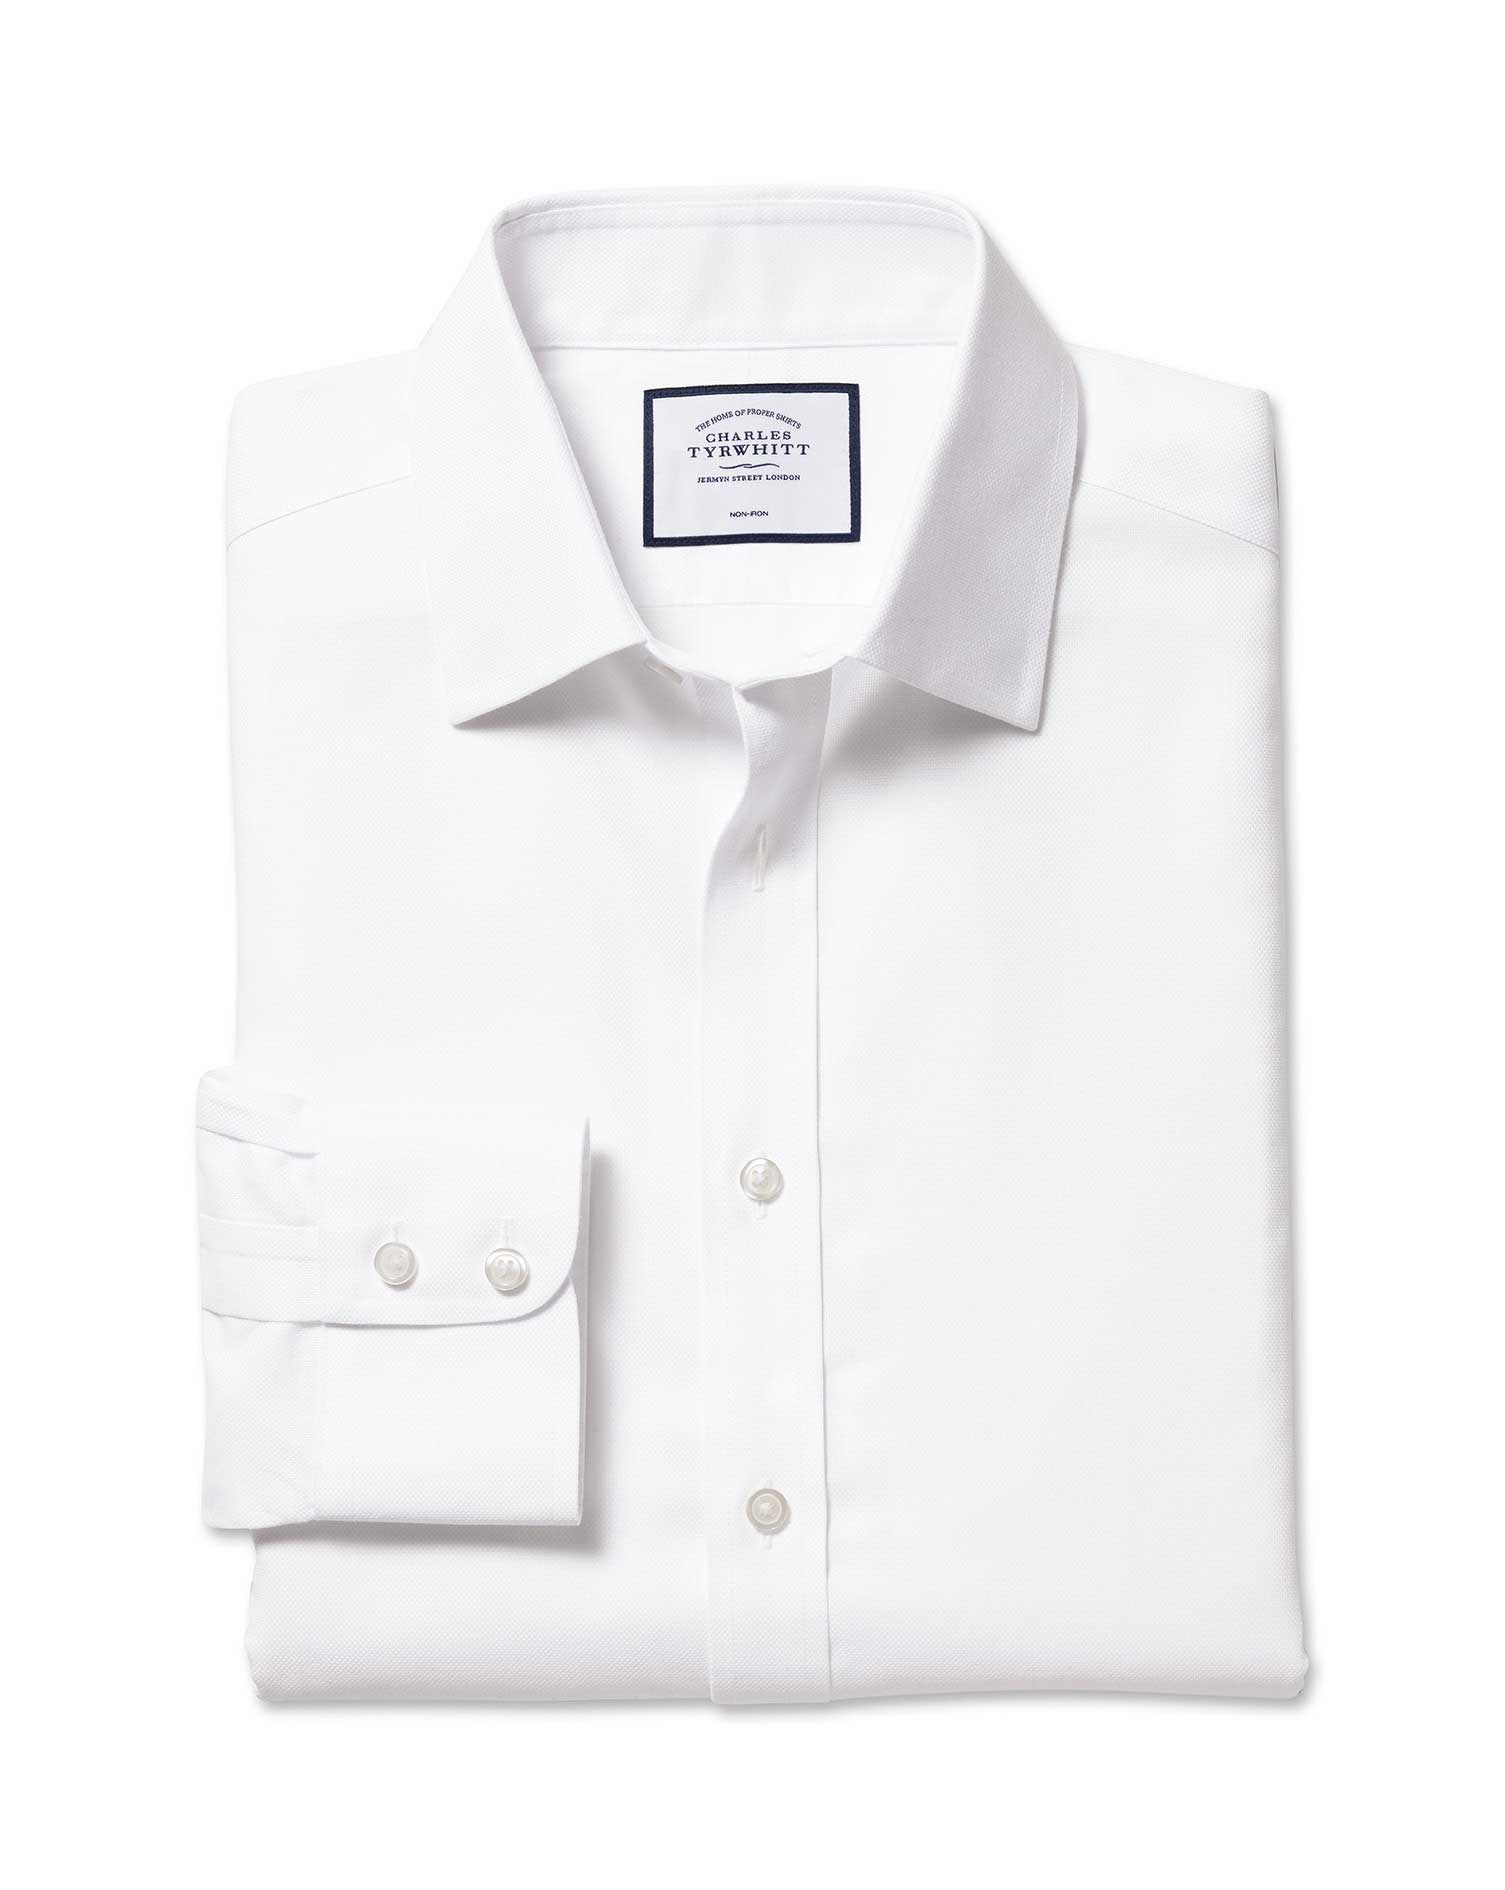 Slim Fit Non-Iron Royal Panama White Cotton Formal Shirt Double Cuff Size 16/33 by Charles Tyrwhitt